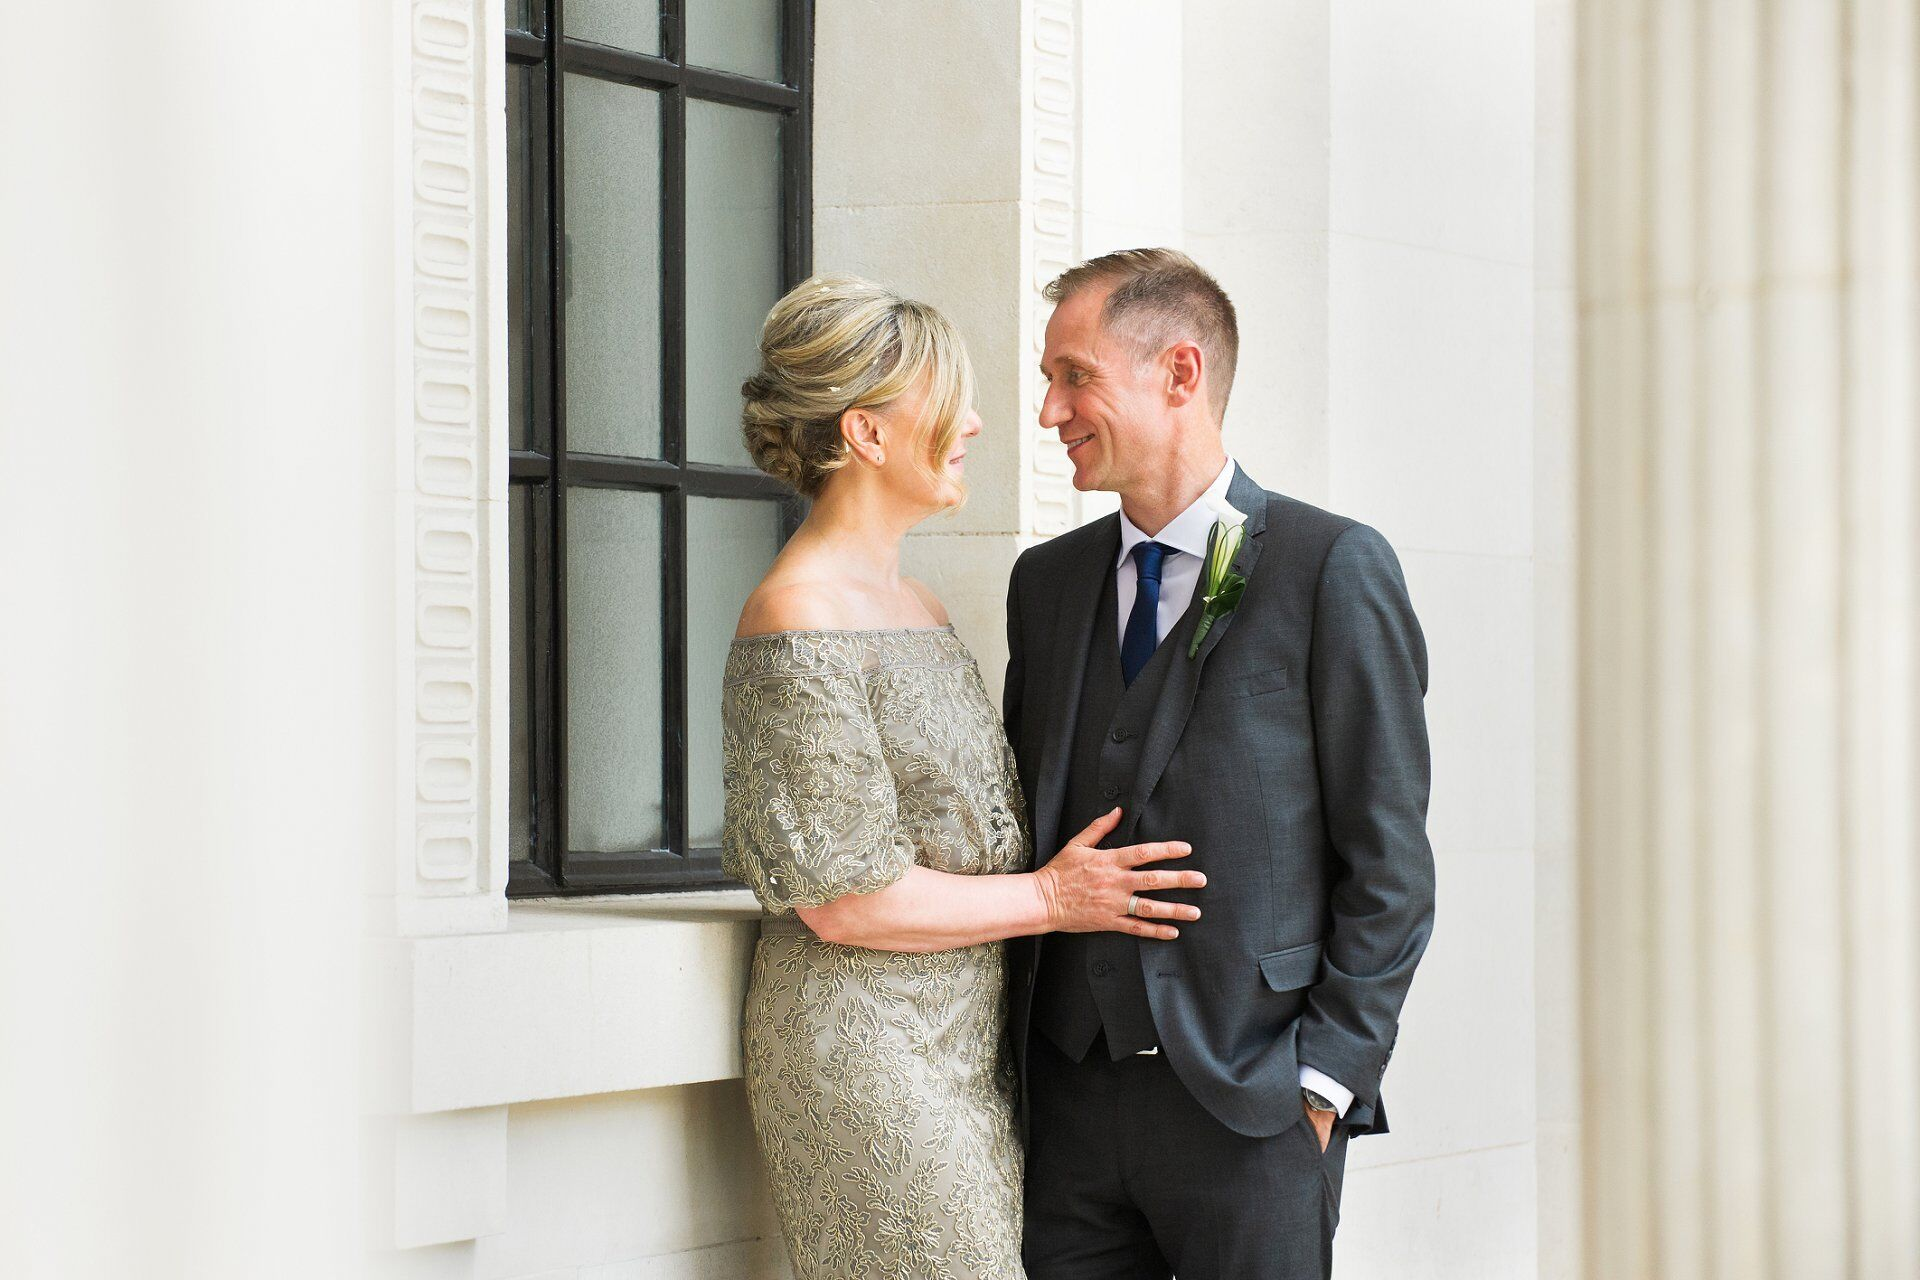 brenda and michael have a private moment after their paddington room wedding